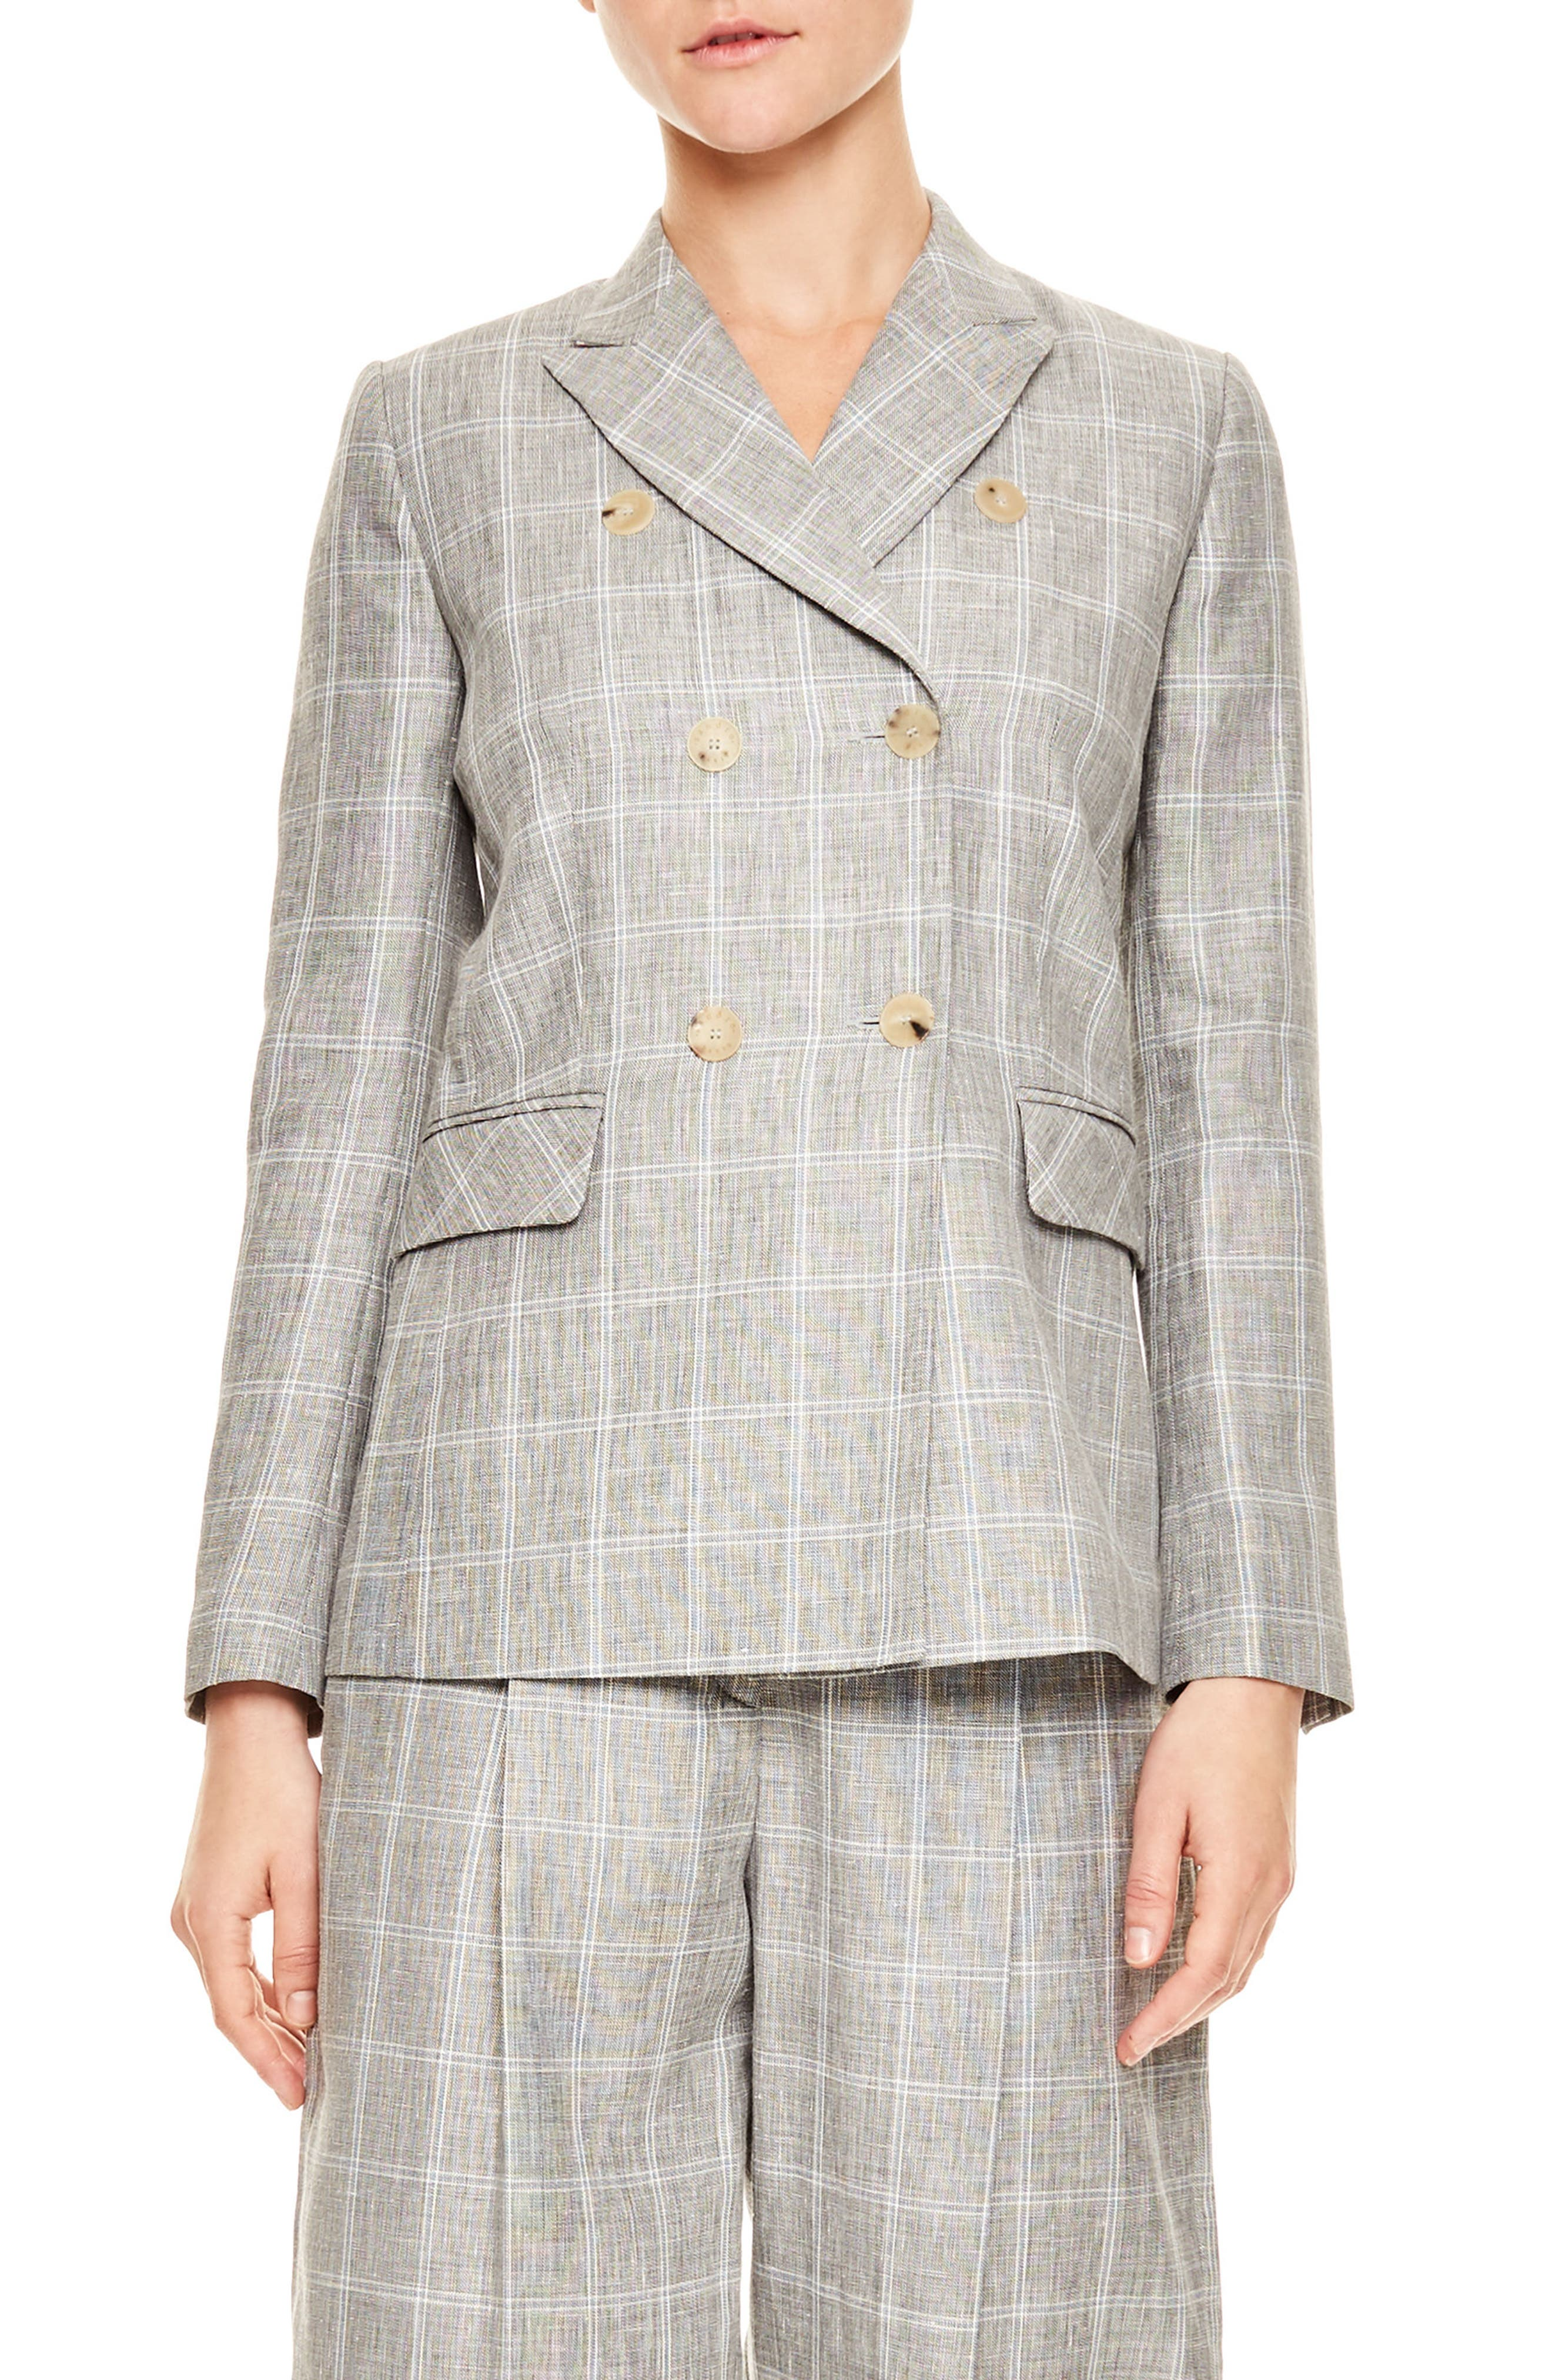 Gris Double Breasted Jacket,                             Main thumbnail 1, color,                             Grey